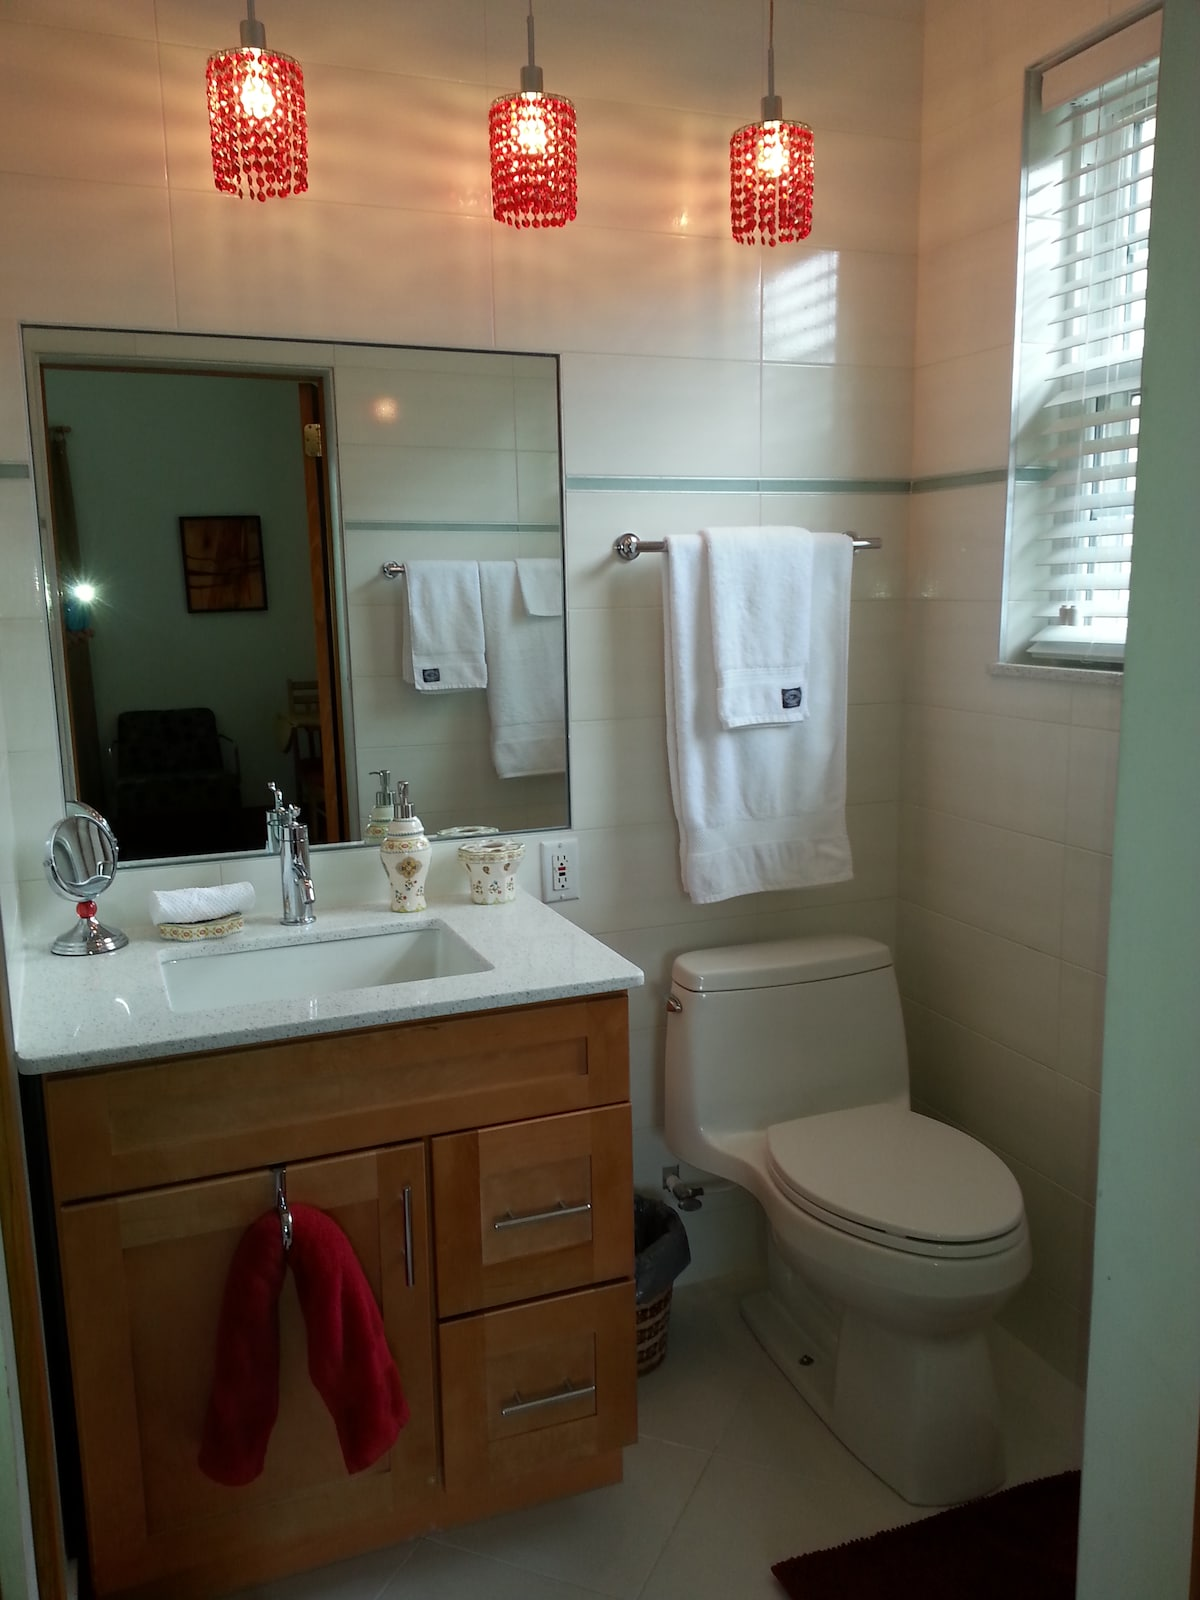 The bathroom clean & modern with lots of fresh towels.